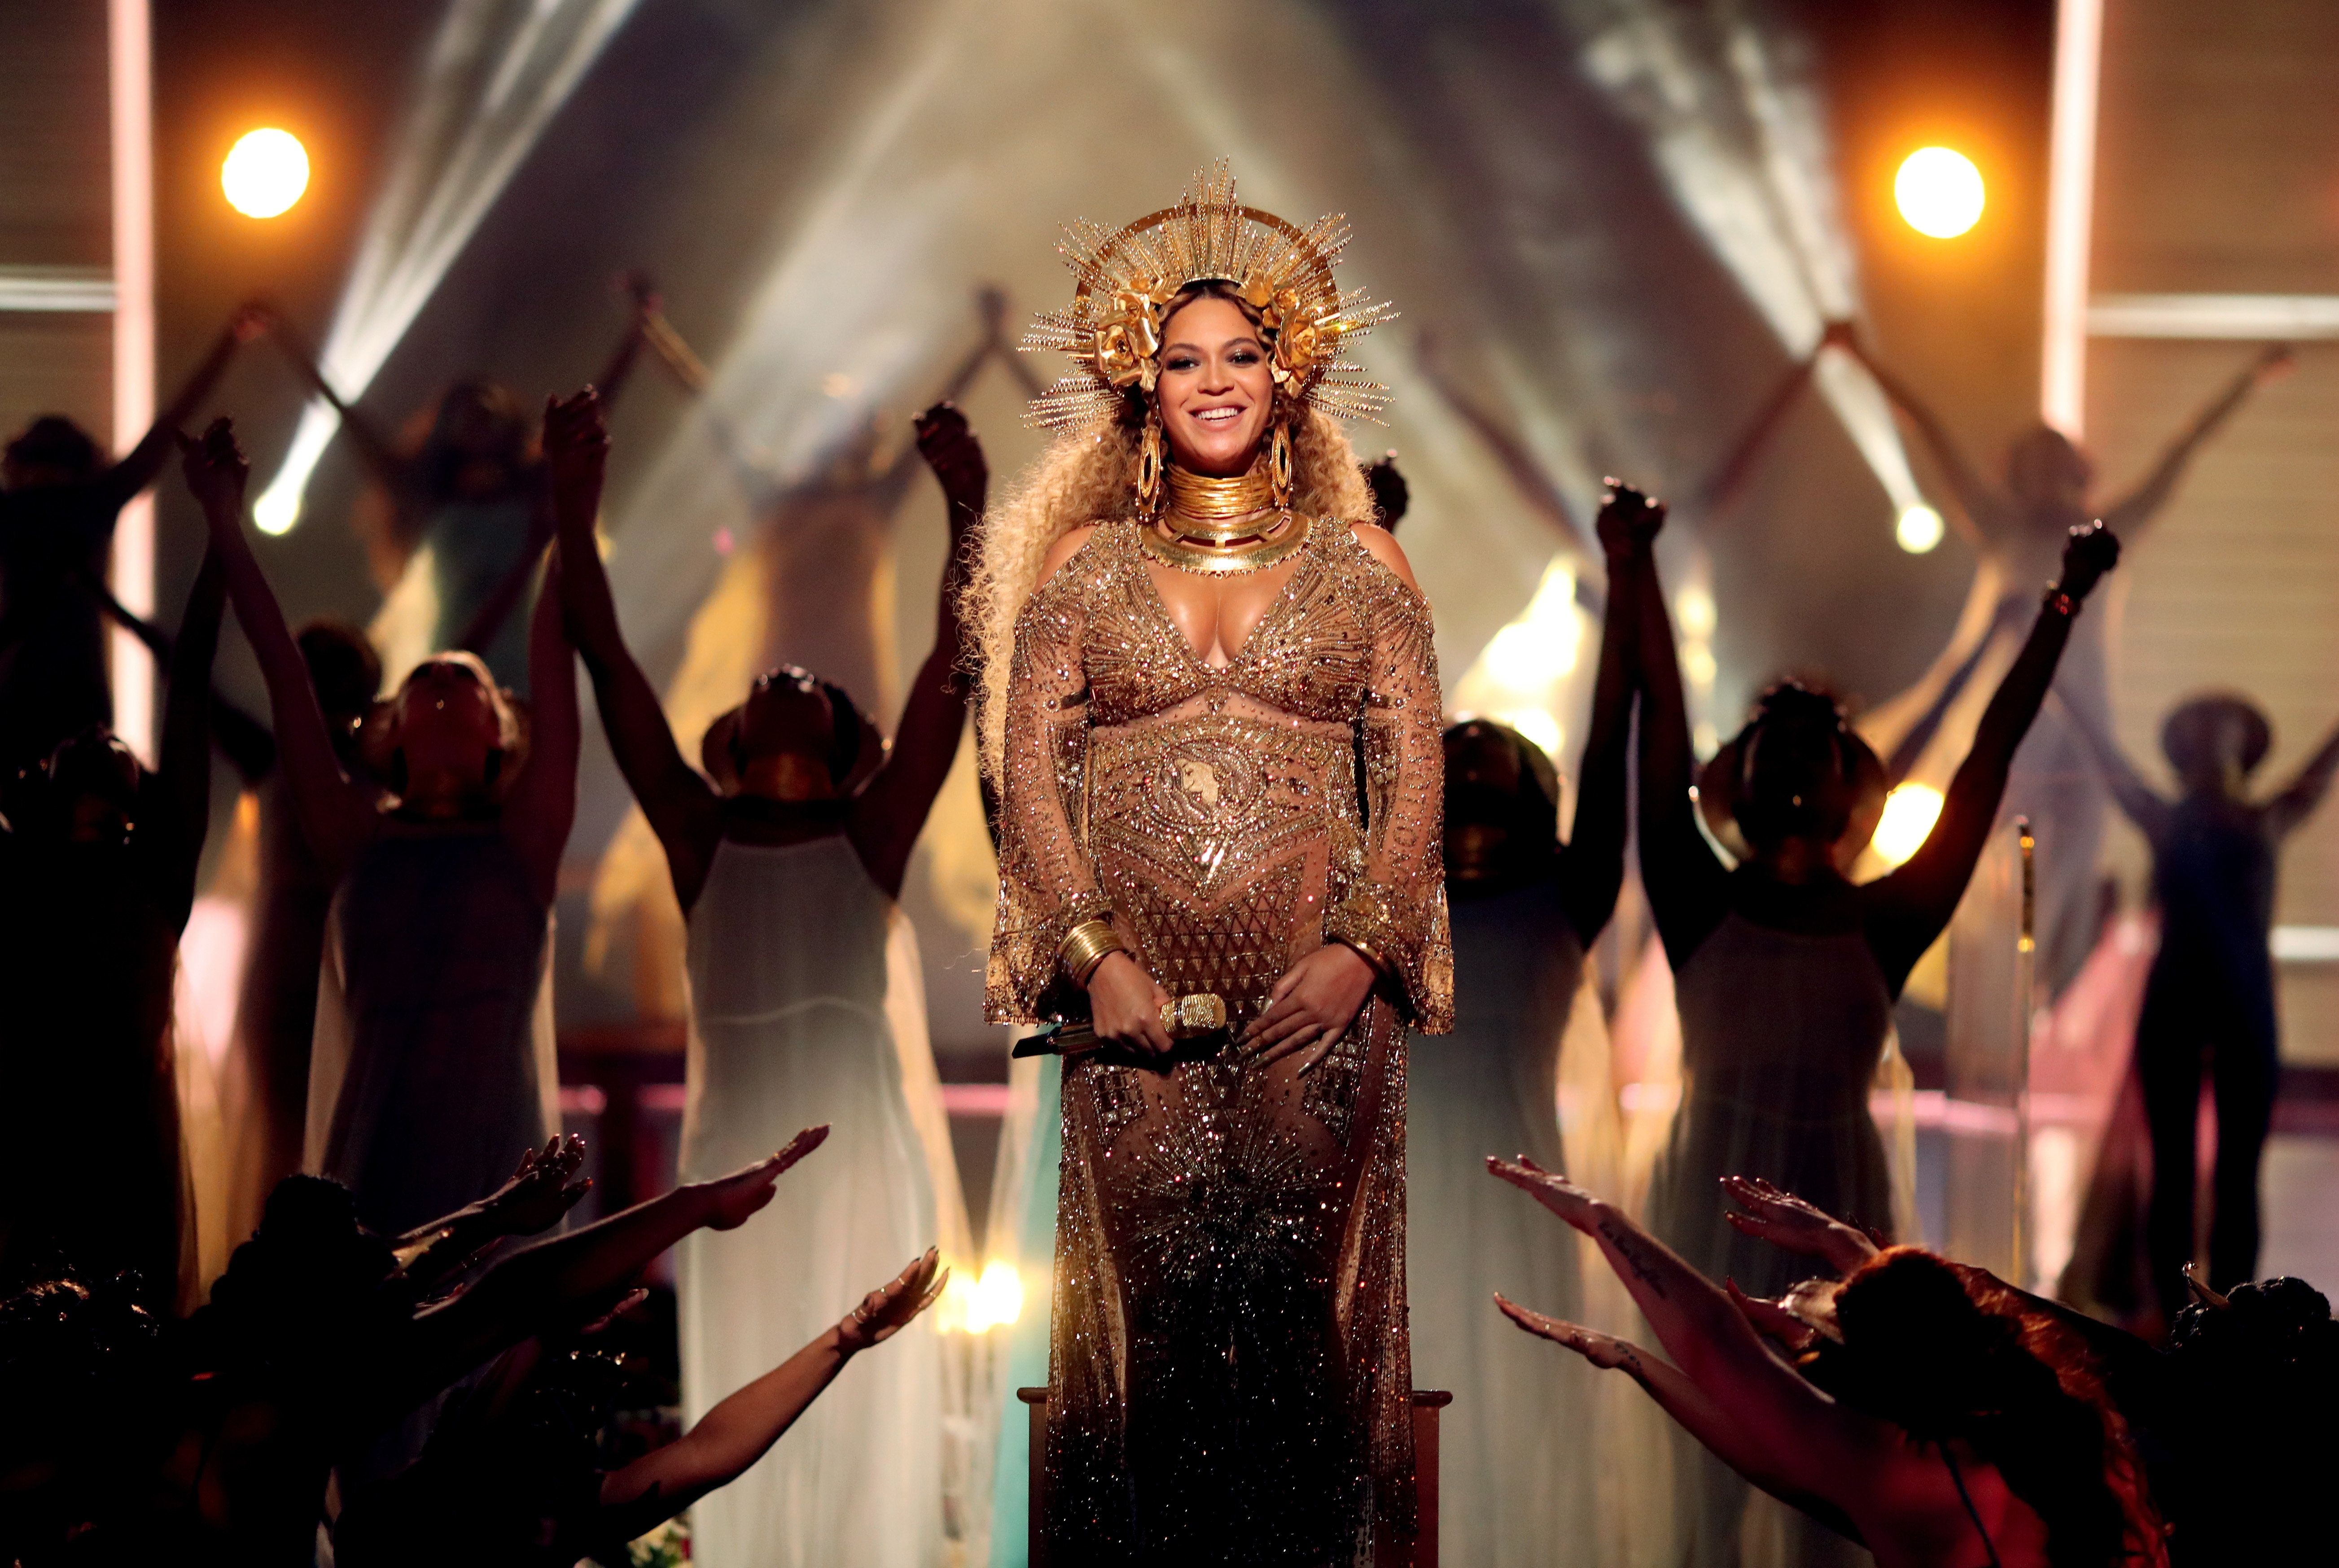 Beyoncé's publicist released a powerful statement about the effects of pregnancy after a gossip site questioned whether the singer had lip injections.